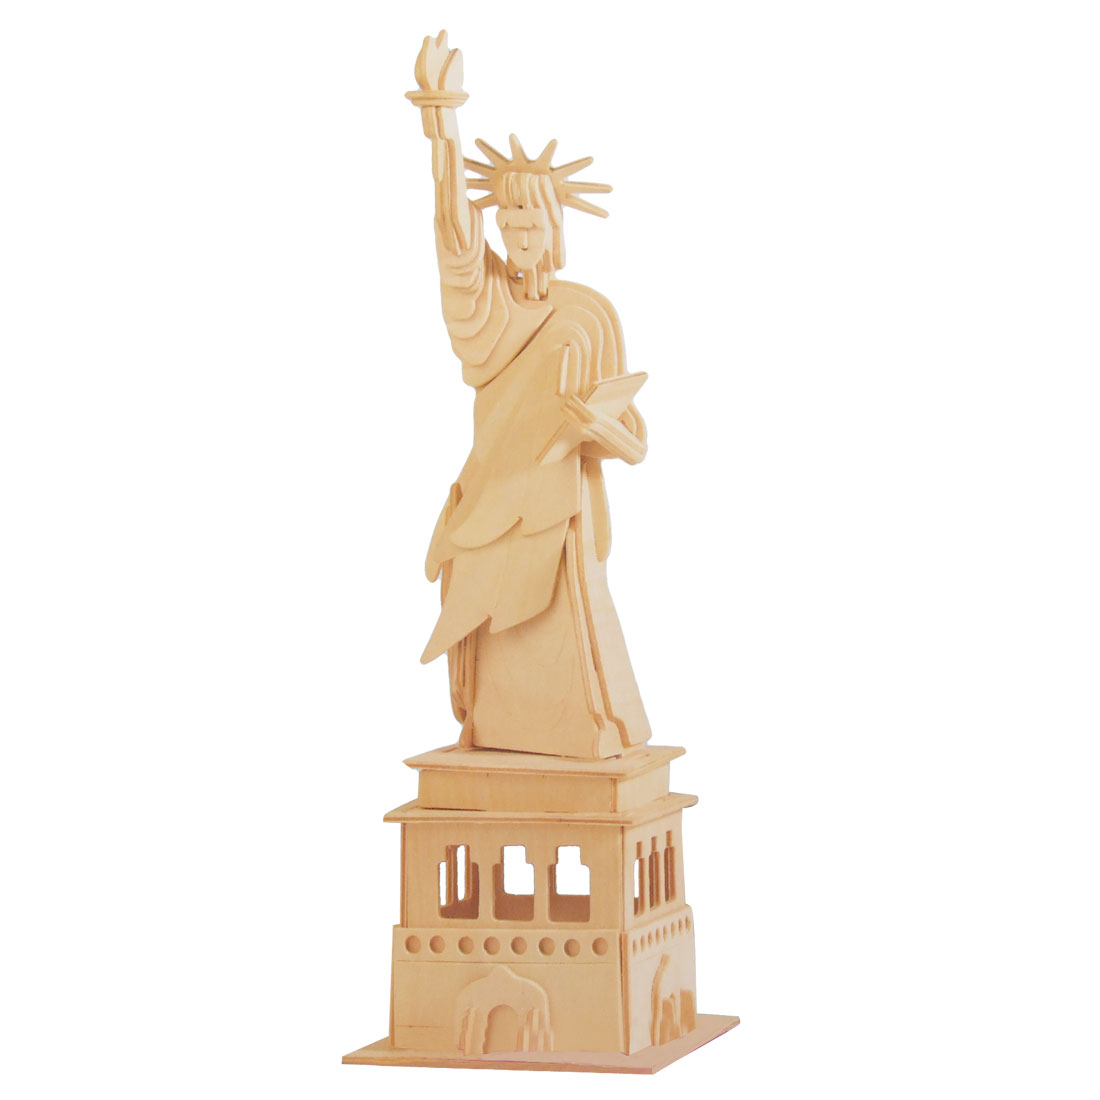 Wood Craft Puzzled DIY 3D The Statue of Liberty Model Construction Kit Toy Gift